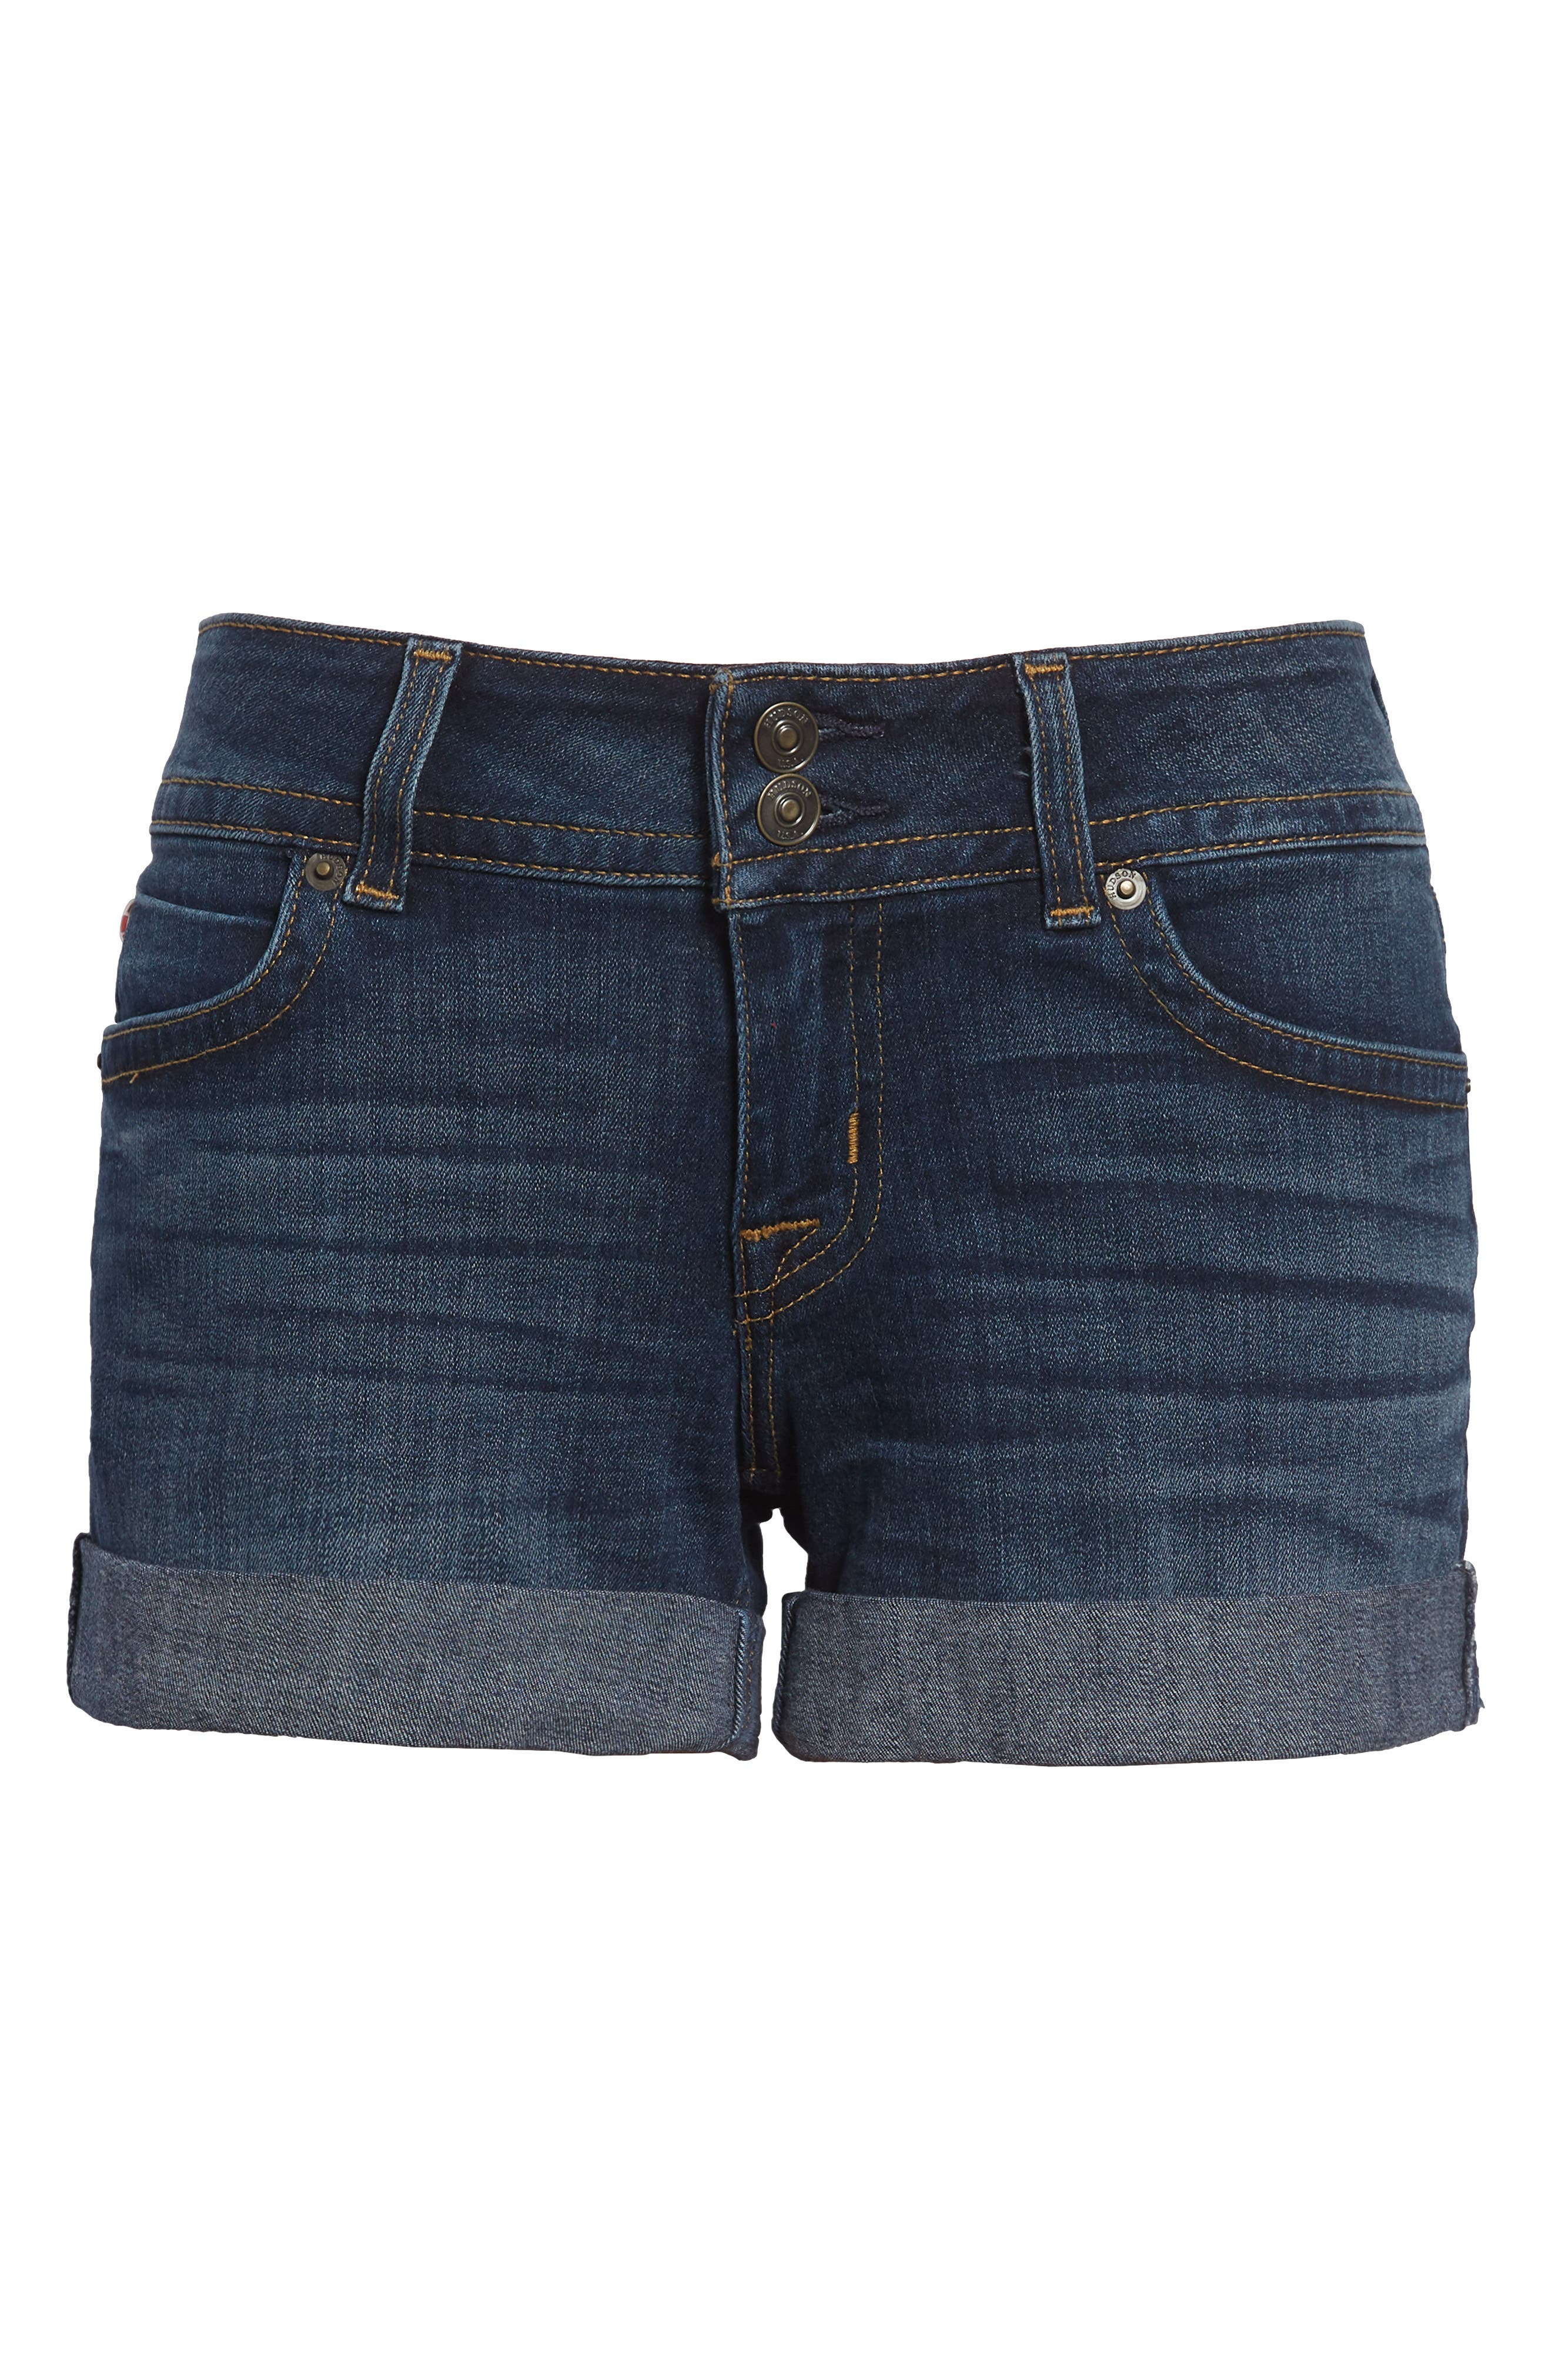 'Croxley' Cuffed Denim Shorts,                             Alternate thumbnail 6, color,